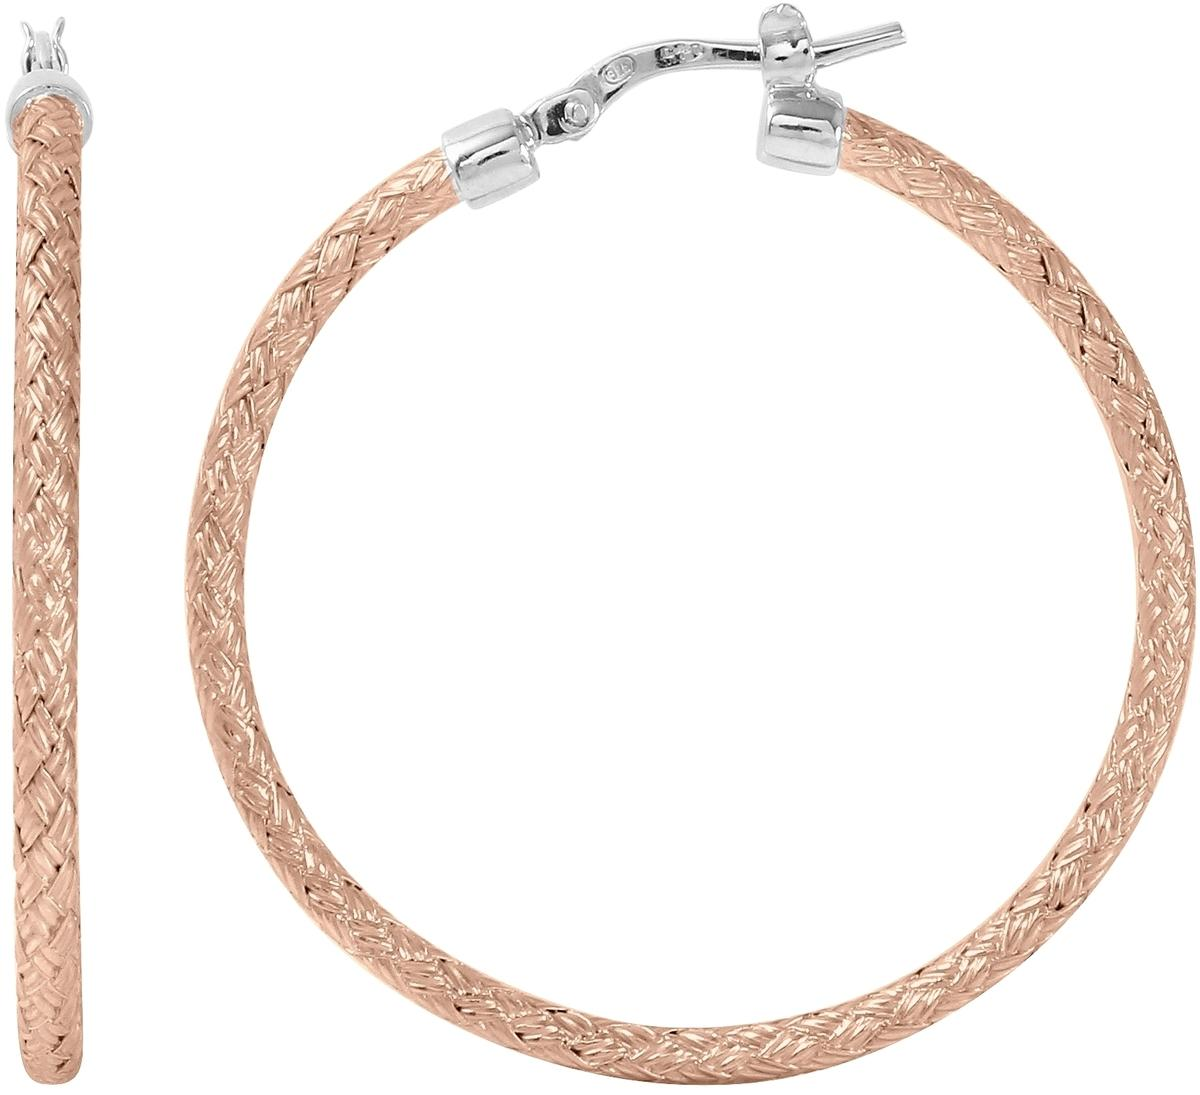 "Charles Garnier - ""Jody"" - 35mm Rose-Gold-Plated & Rhodium-Plated Sterling Silver Hoop Earrings"